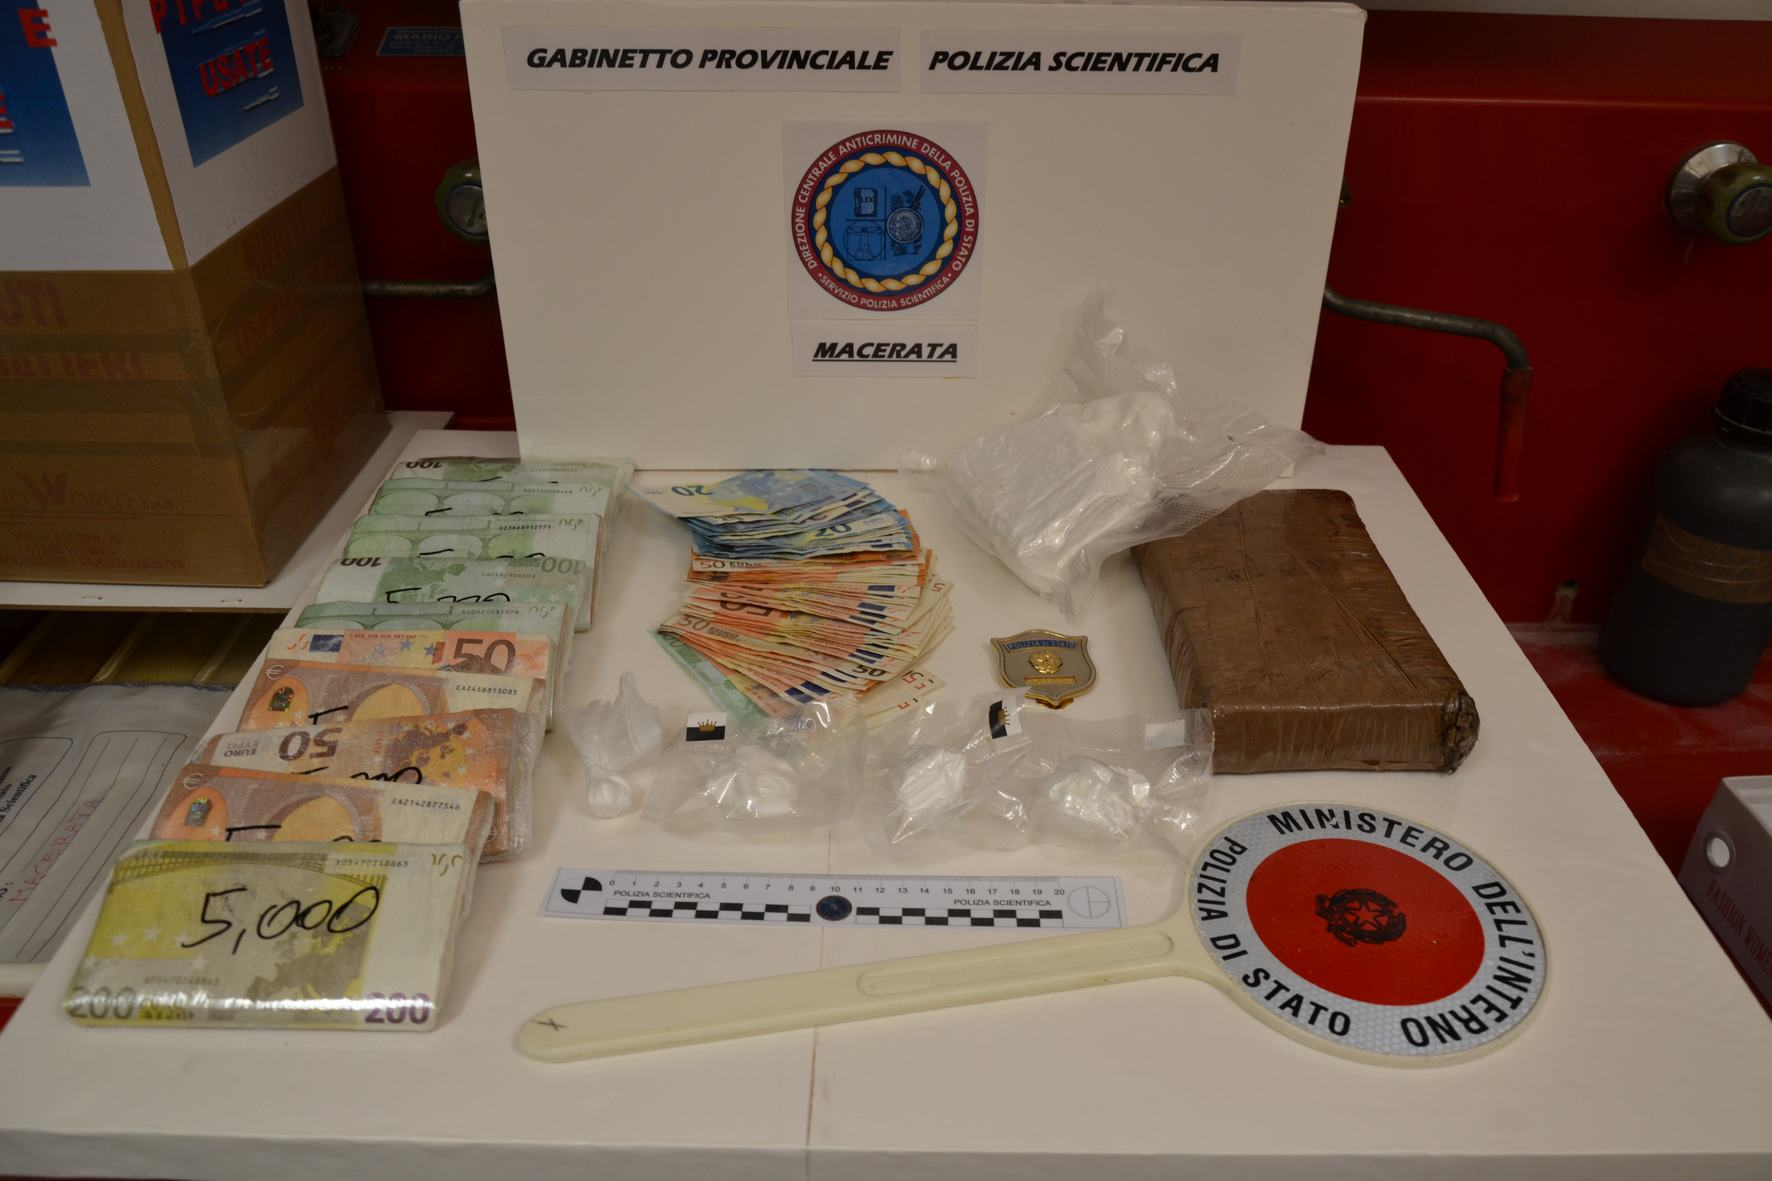 Macerata: arrestato pericolosissimo spacciatore extracomunitario -  Sequestrato  kg 1,700  di cocaina purissima.